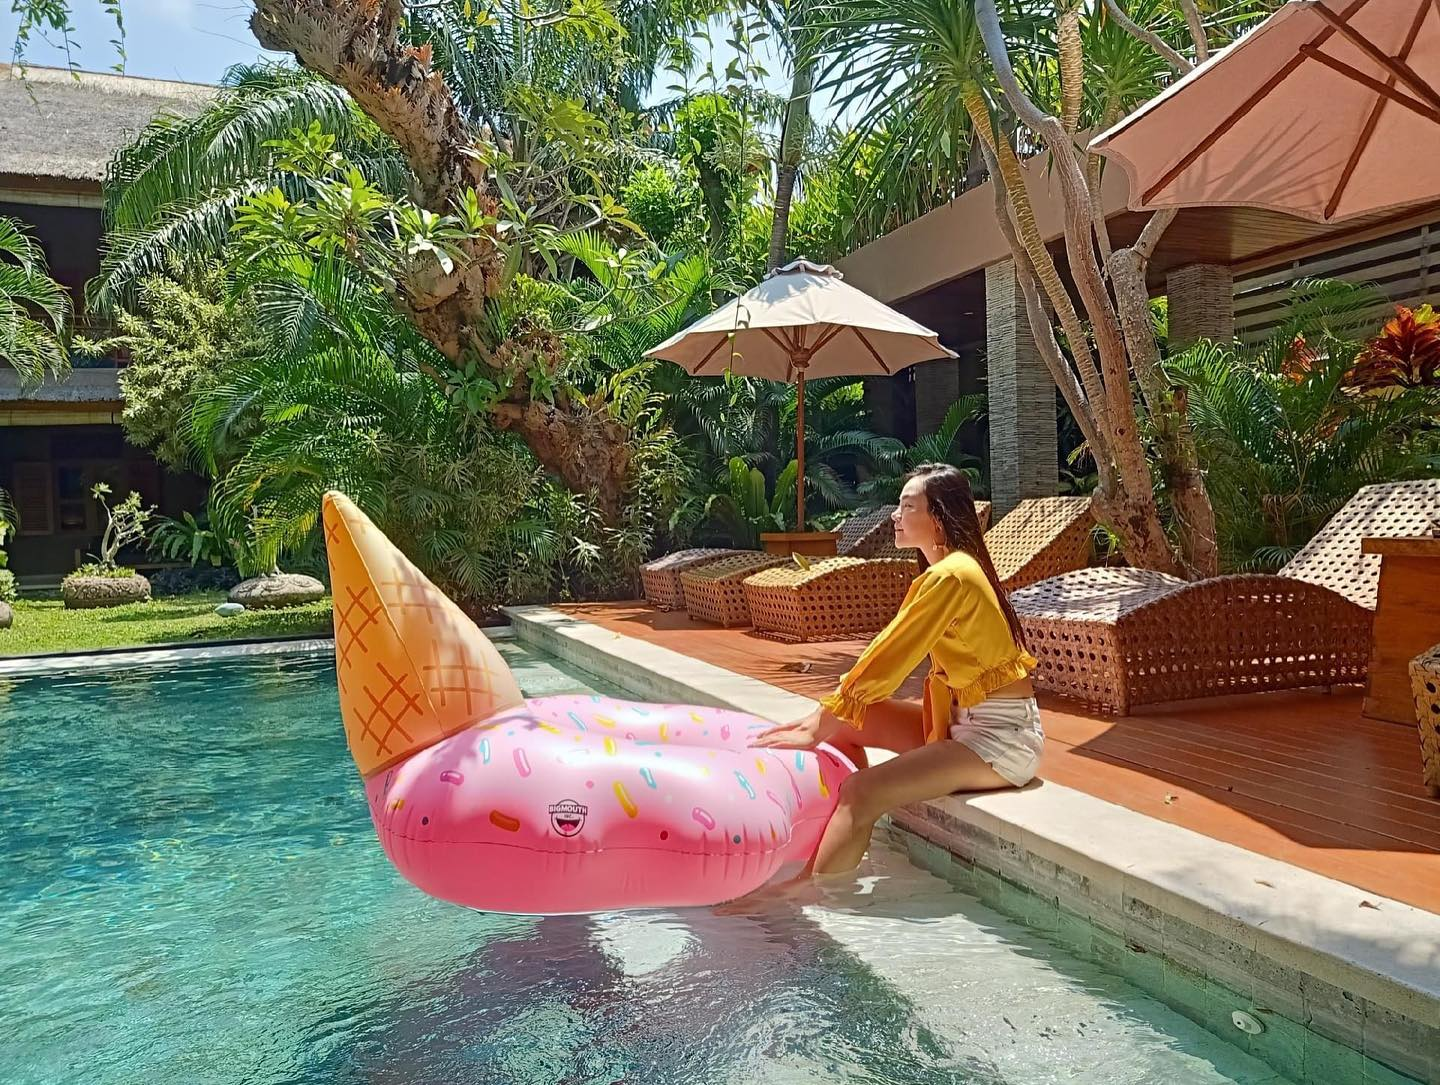 Spend a week at your Kinaree villa and experience the luxury of private pool to cool off in at any t